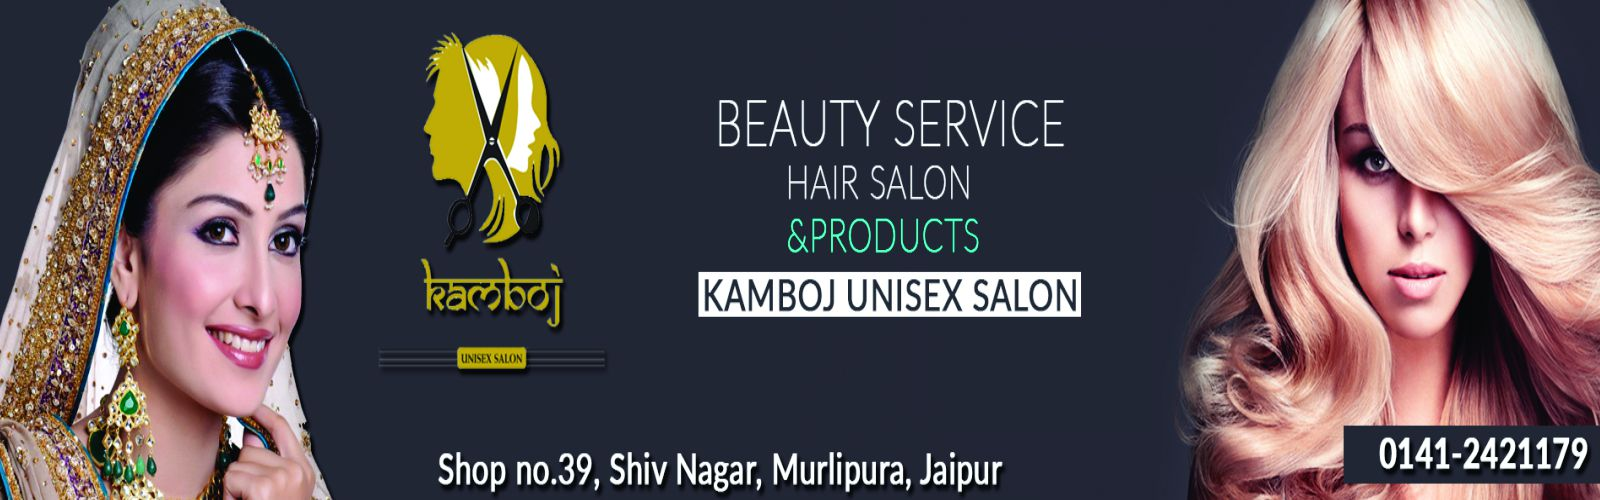 admin/photos/Kamboj Unisex Salon